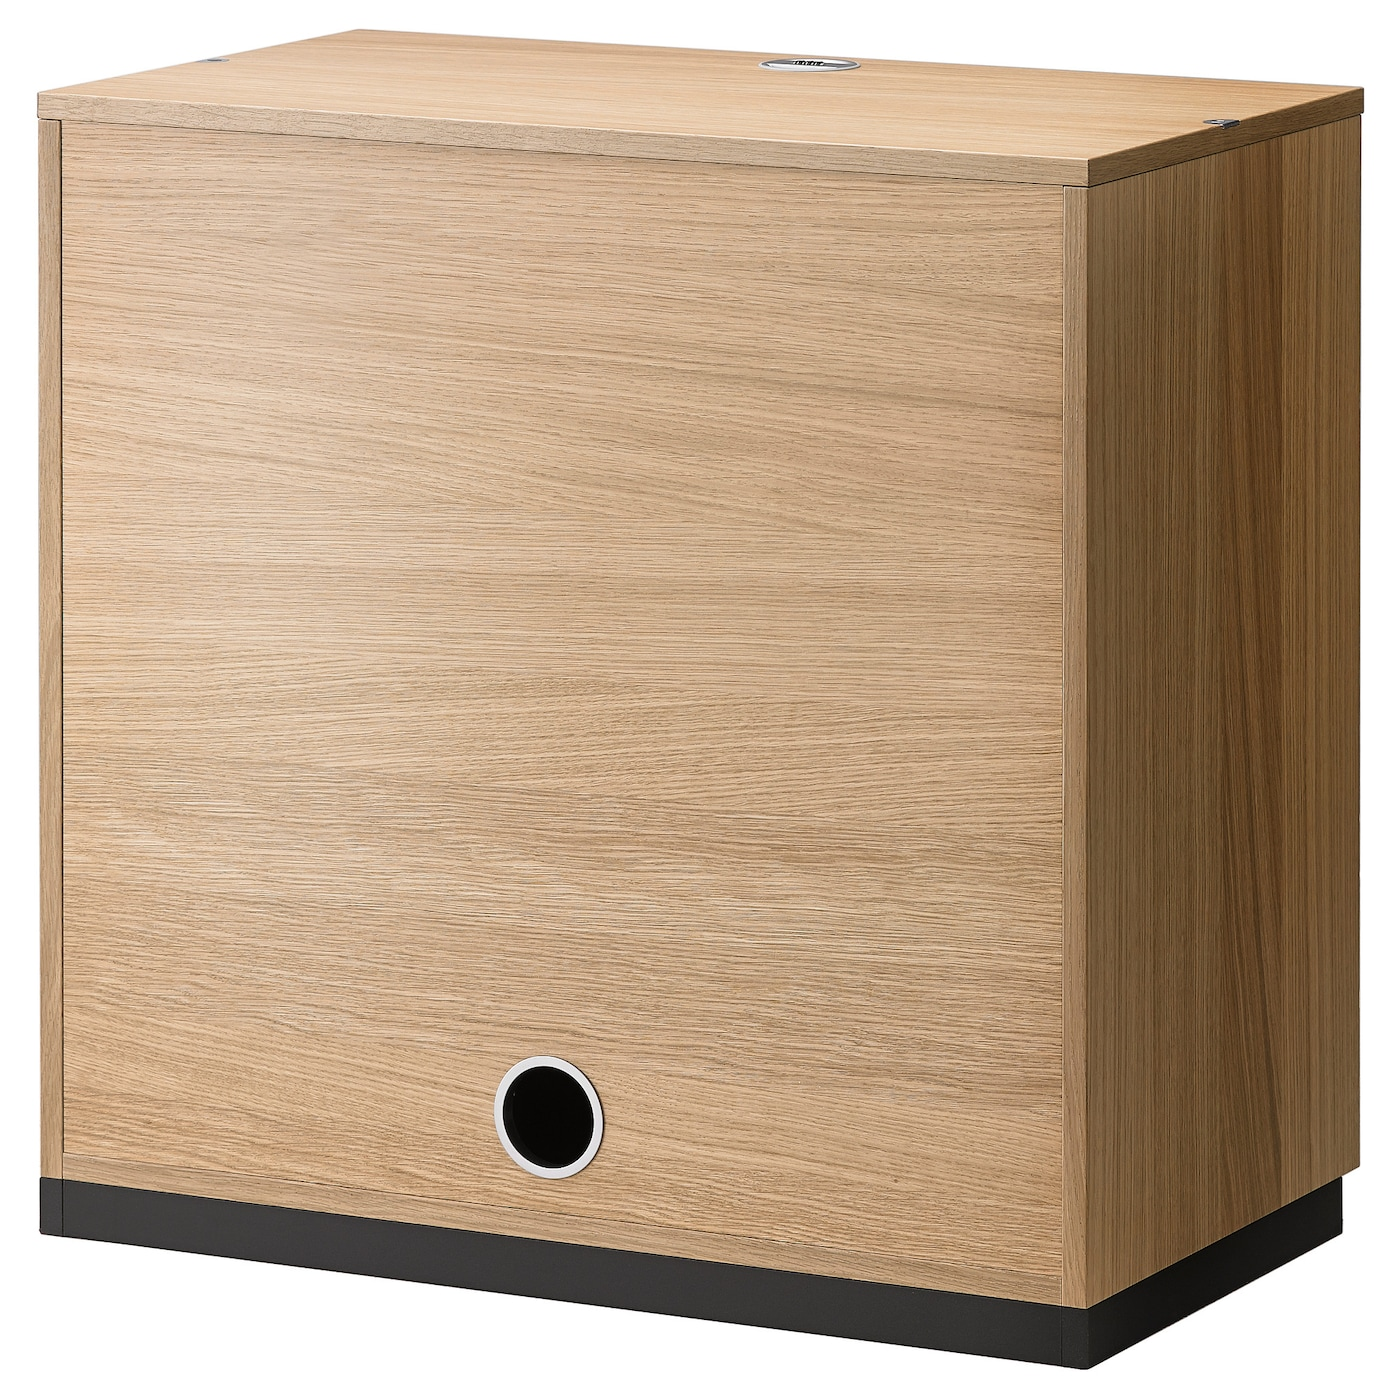 Faktum Ikea Schublade Ausbauen ~ IKEA GALANT roll front cabinet 10 year guarantee Read about the terms